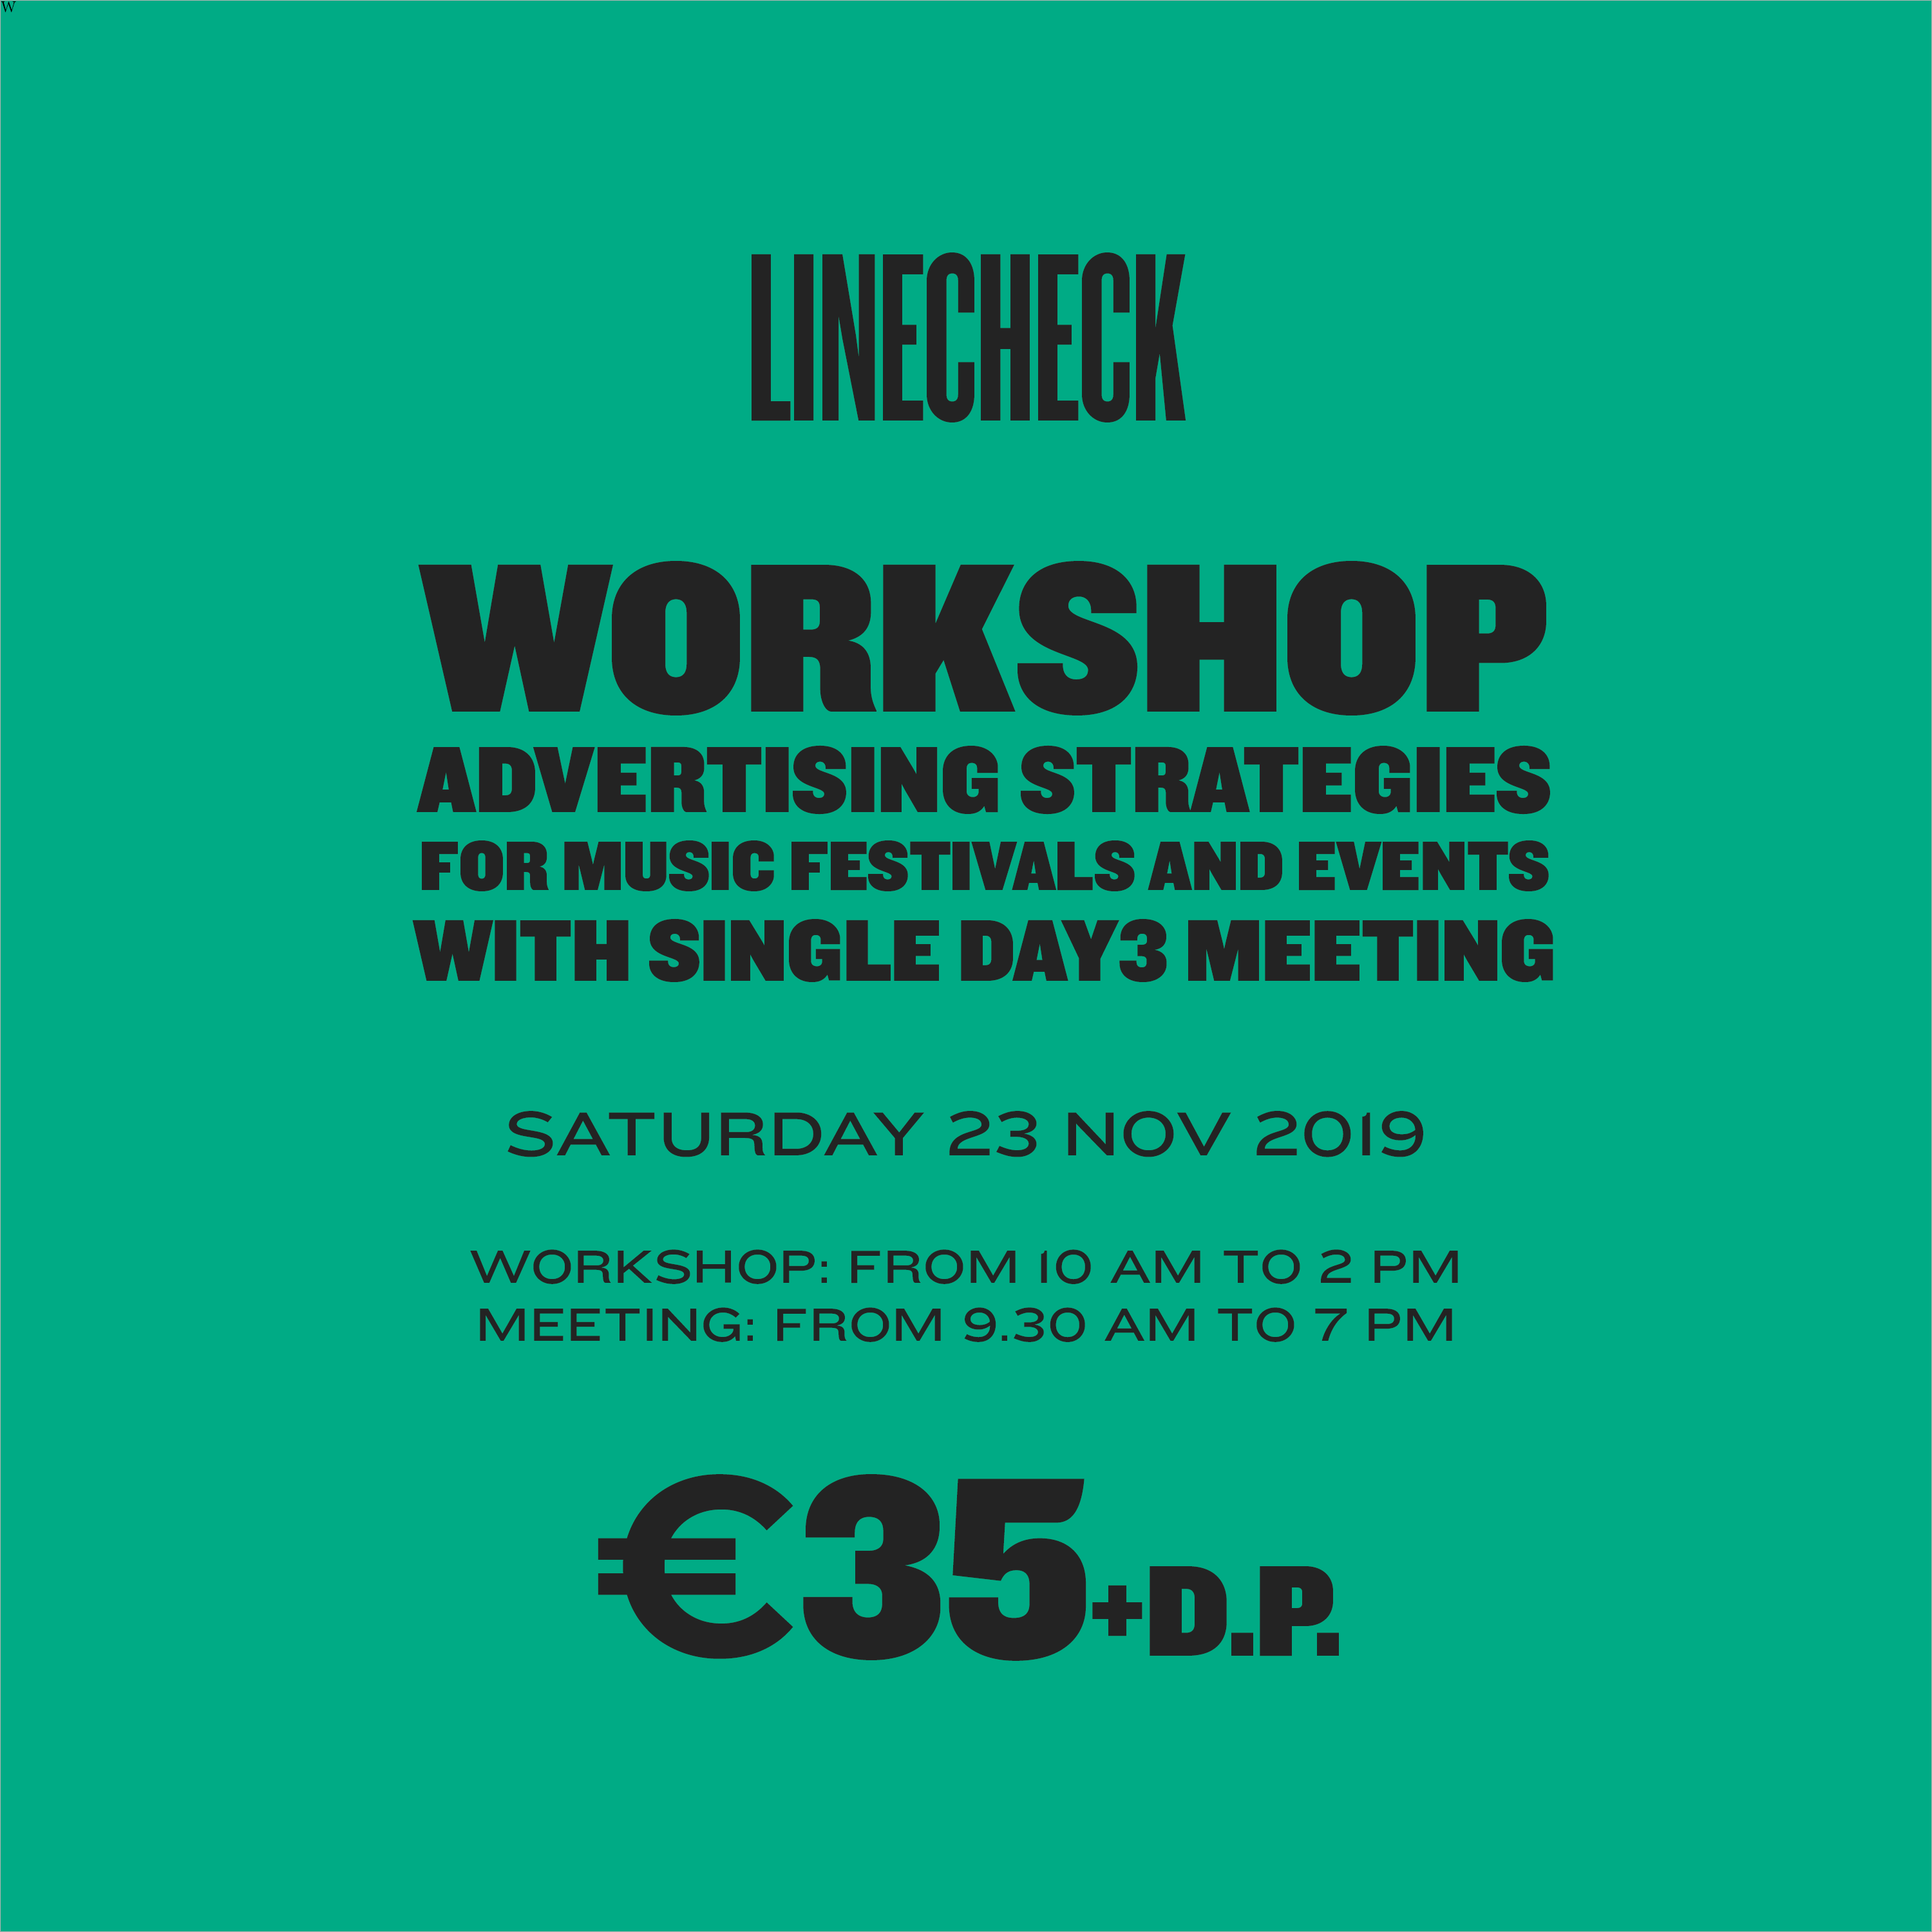 LINECHECK 2019  - WORKSHOP ADVERTISING STRATEGIES FOR MUSIC FESTIVALS AND EVENTS + SINGLE DAY MEETING 3